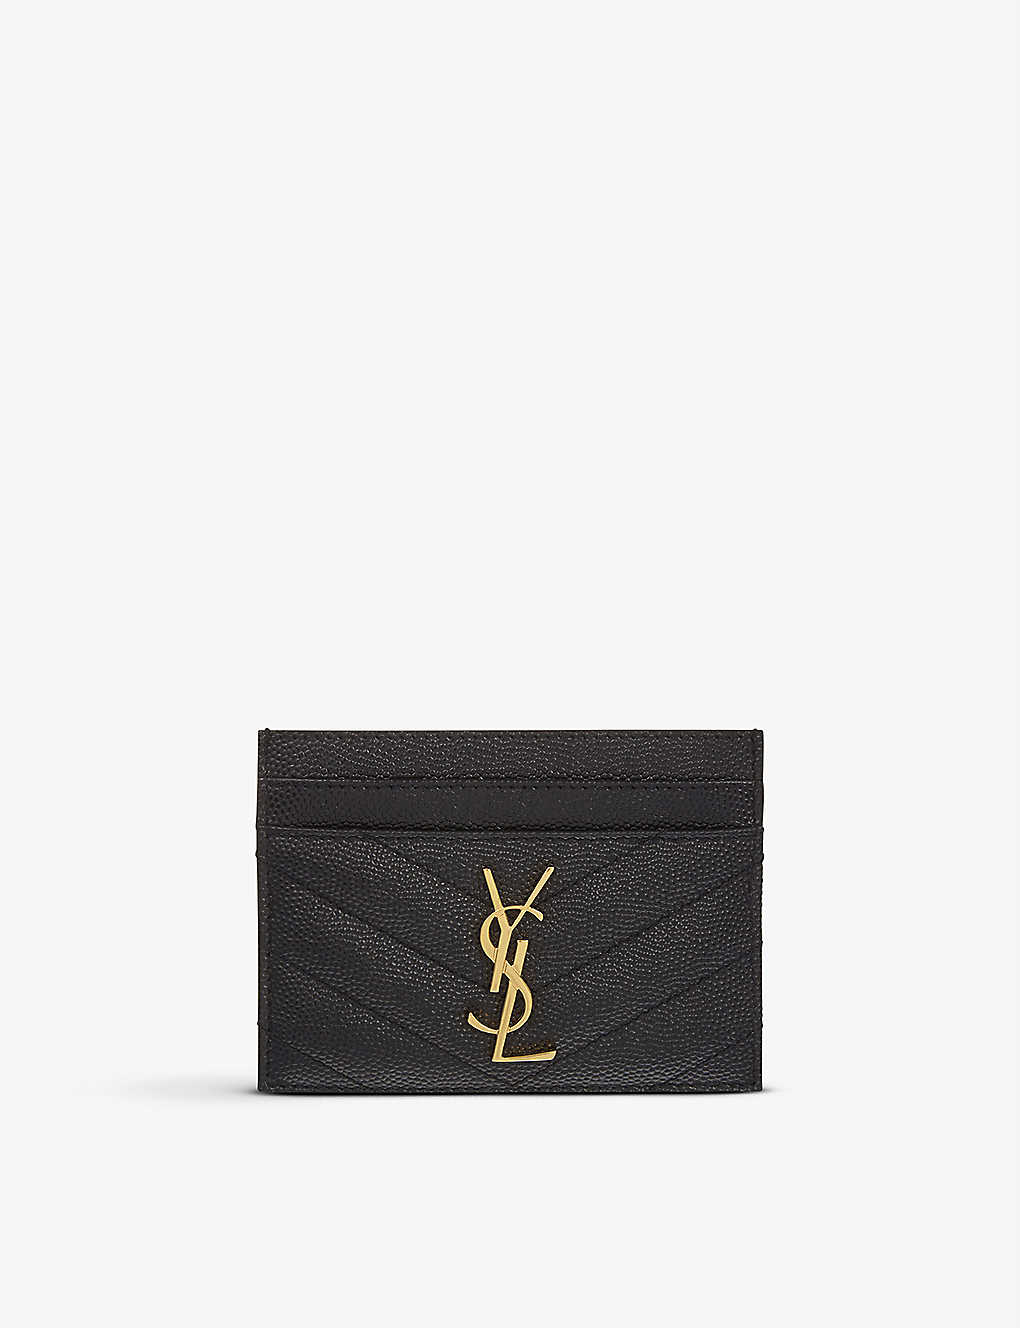 9 Reasons You Should Fall In Love With Ysl Credit Card Holder | Ysl Credit Card Holder